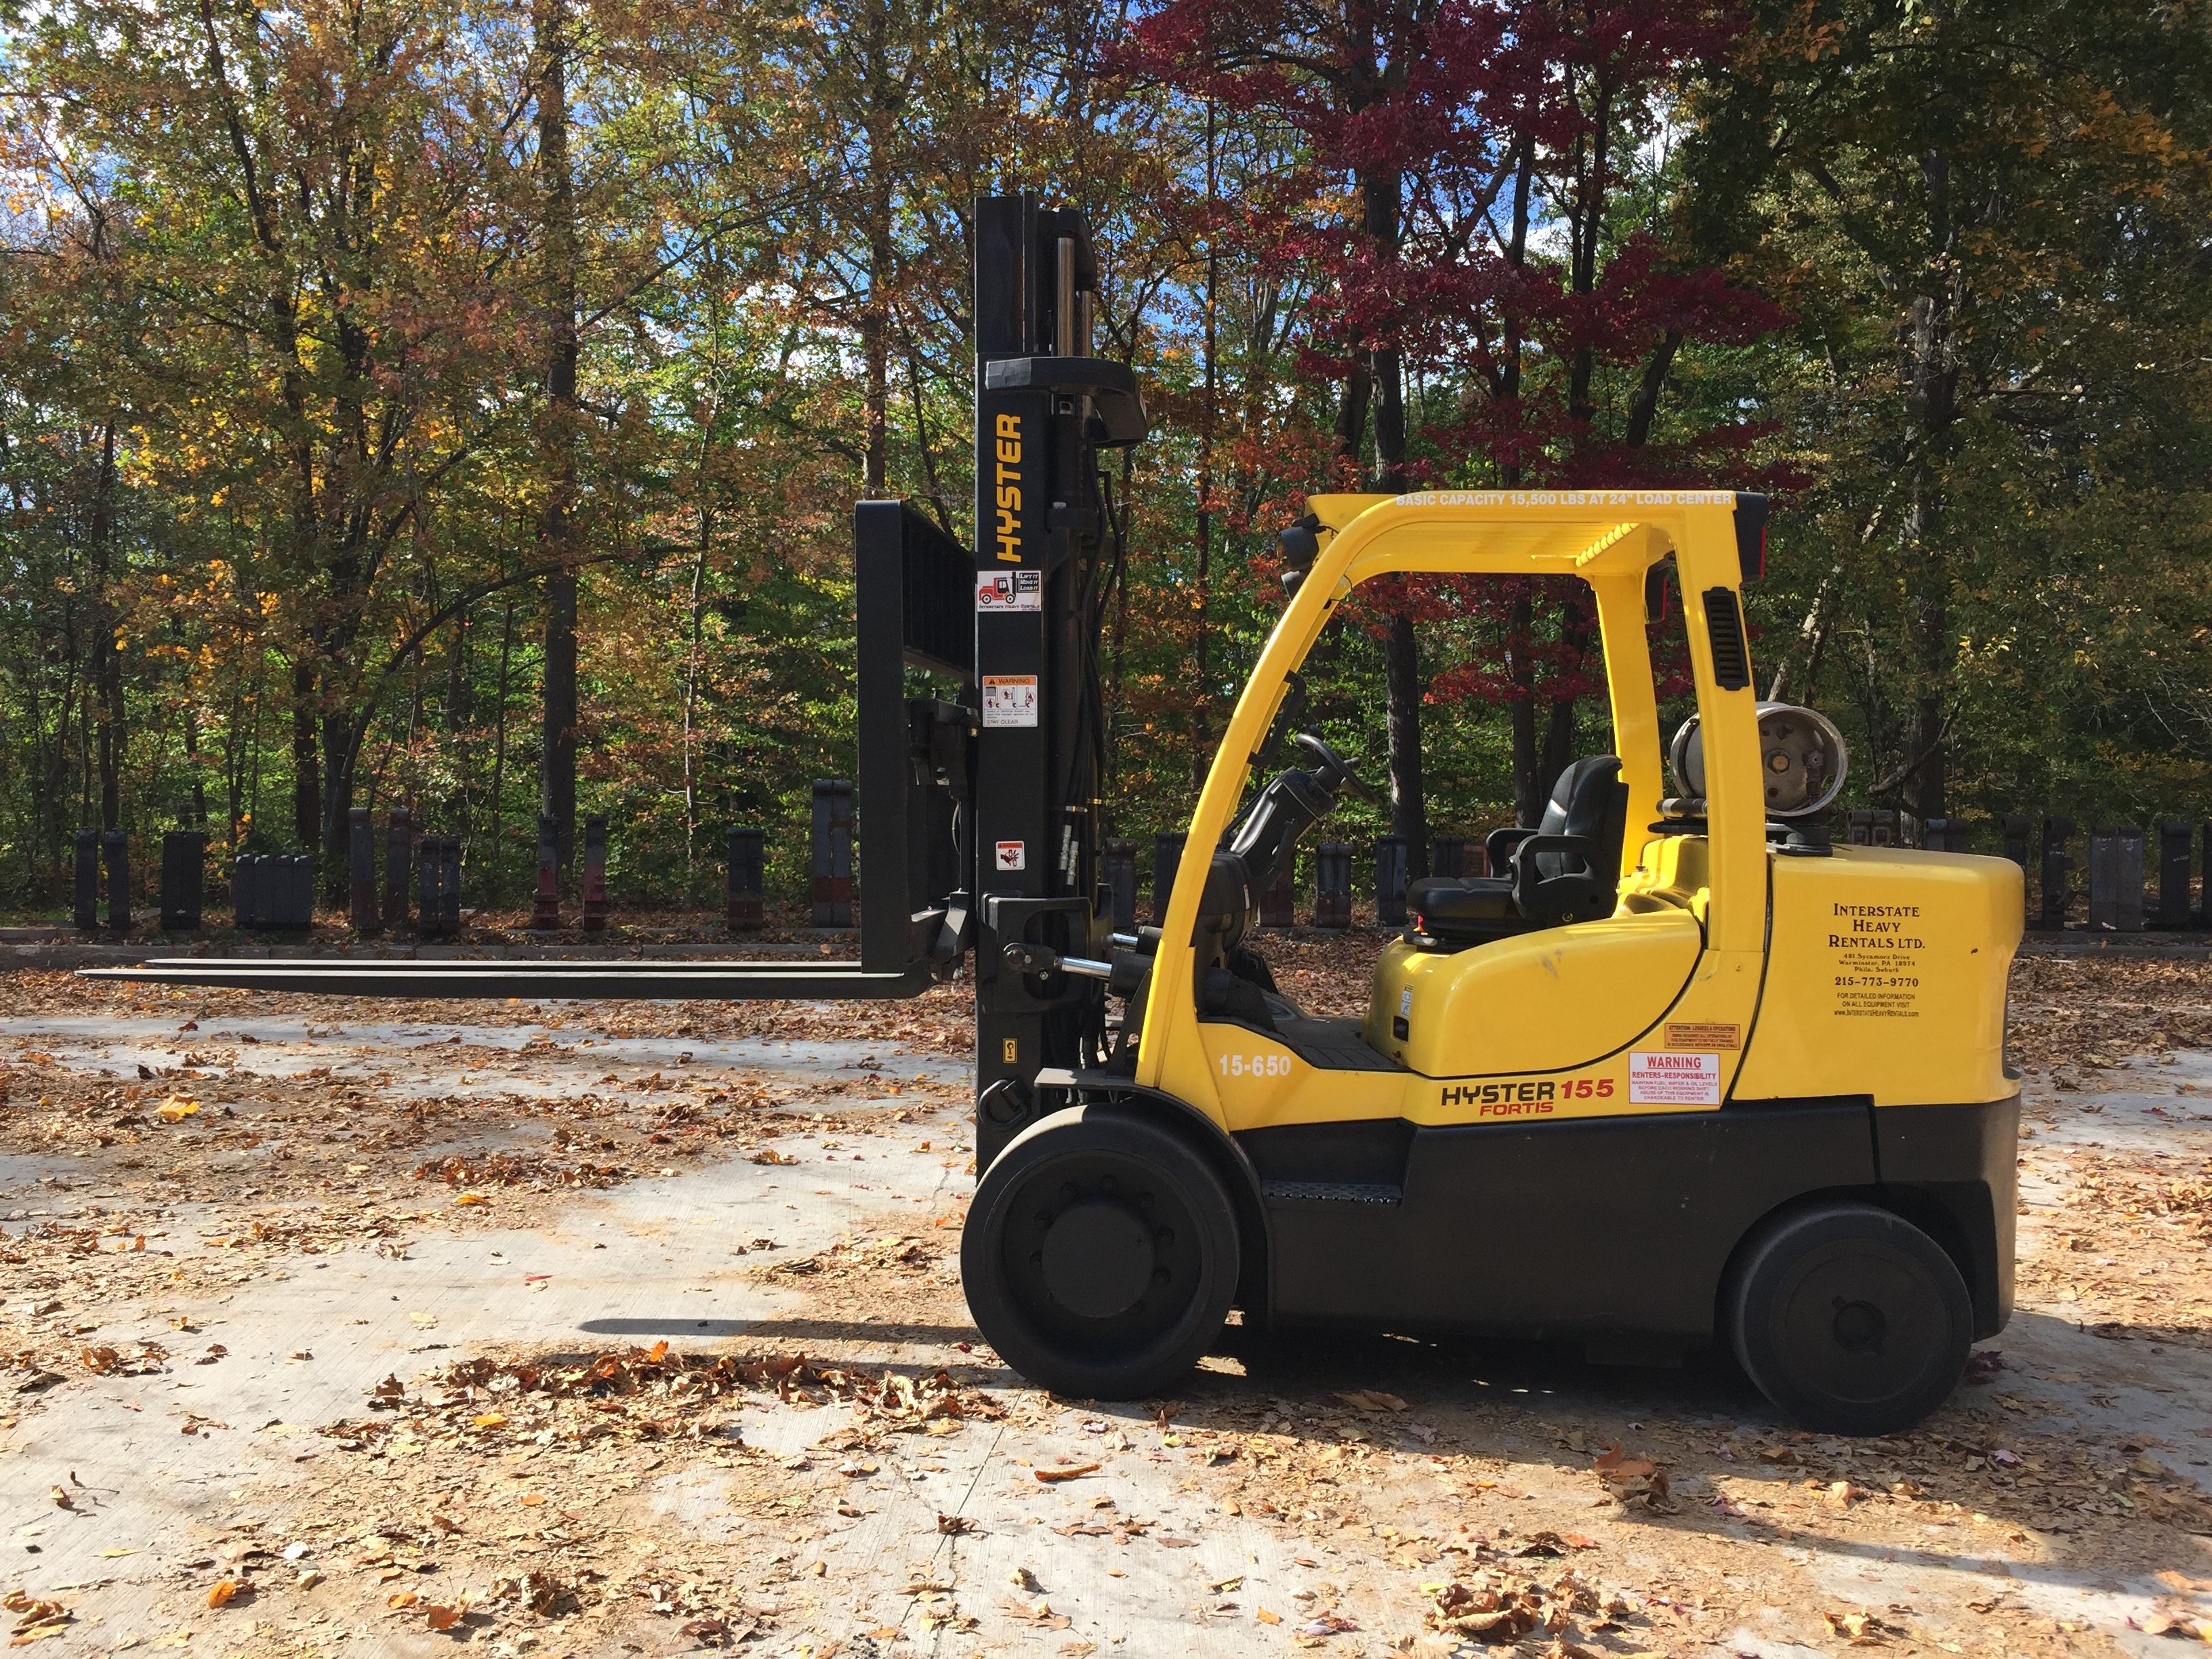 hyster 2.5 fortens manual